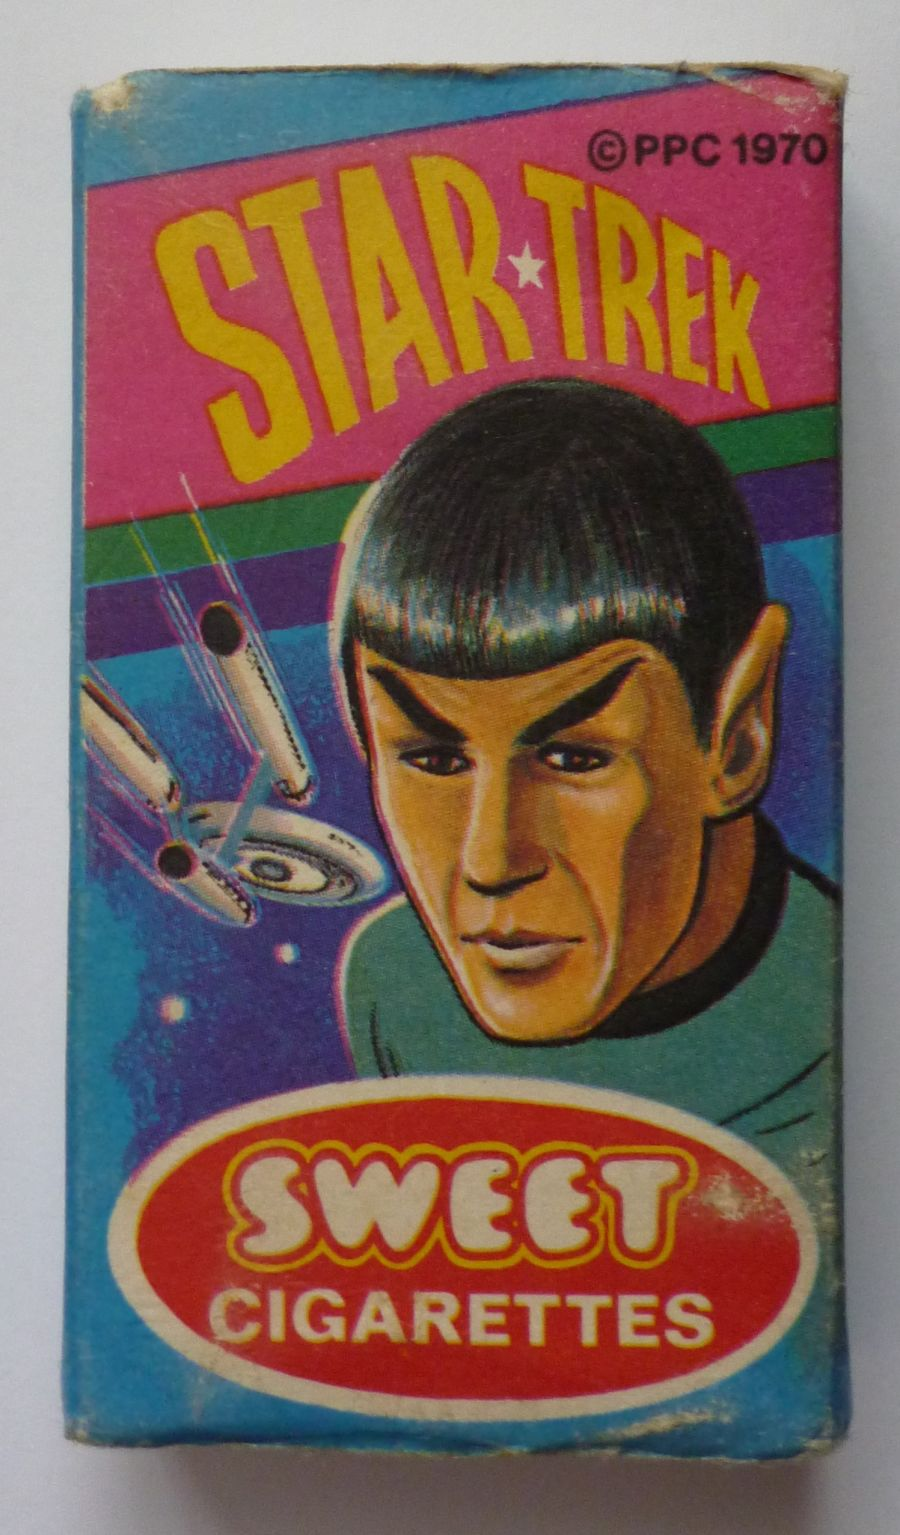 Star Trek Primrose Sweet Cigarette Box 1970 Packet